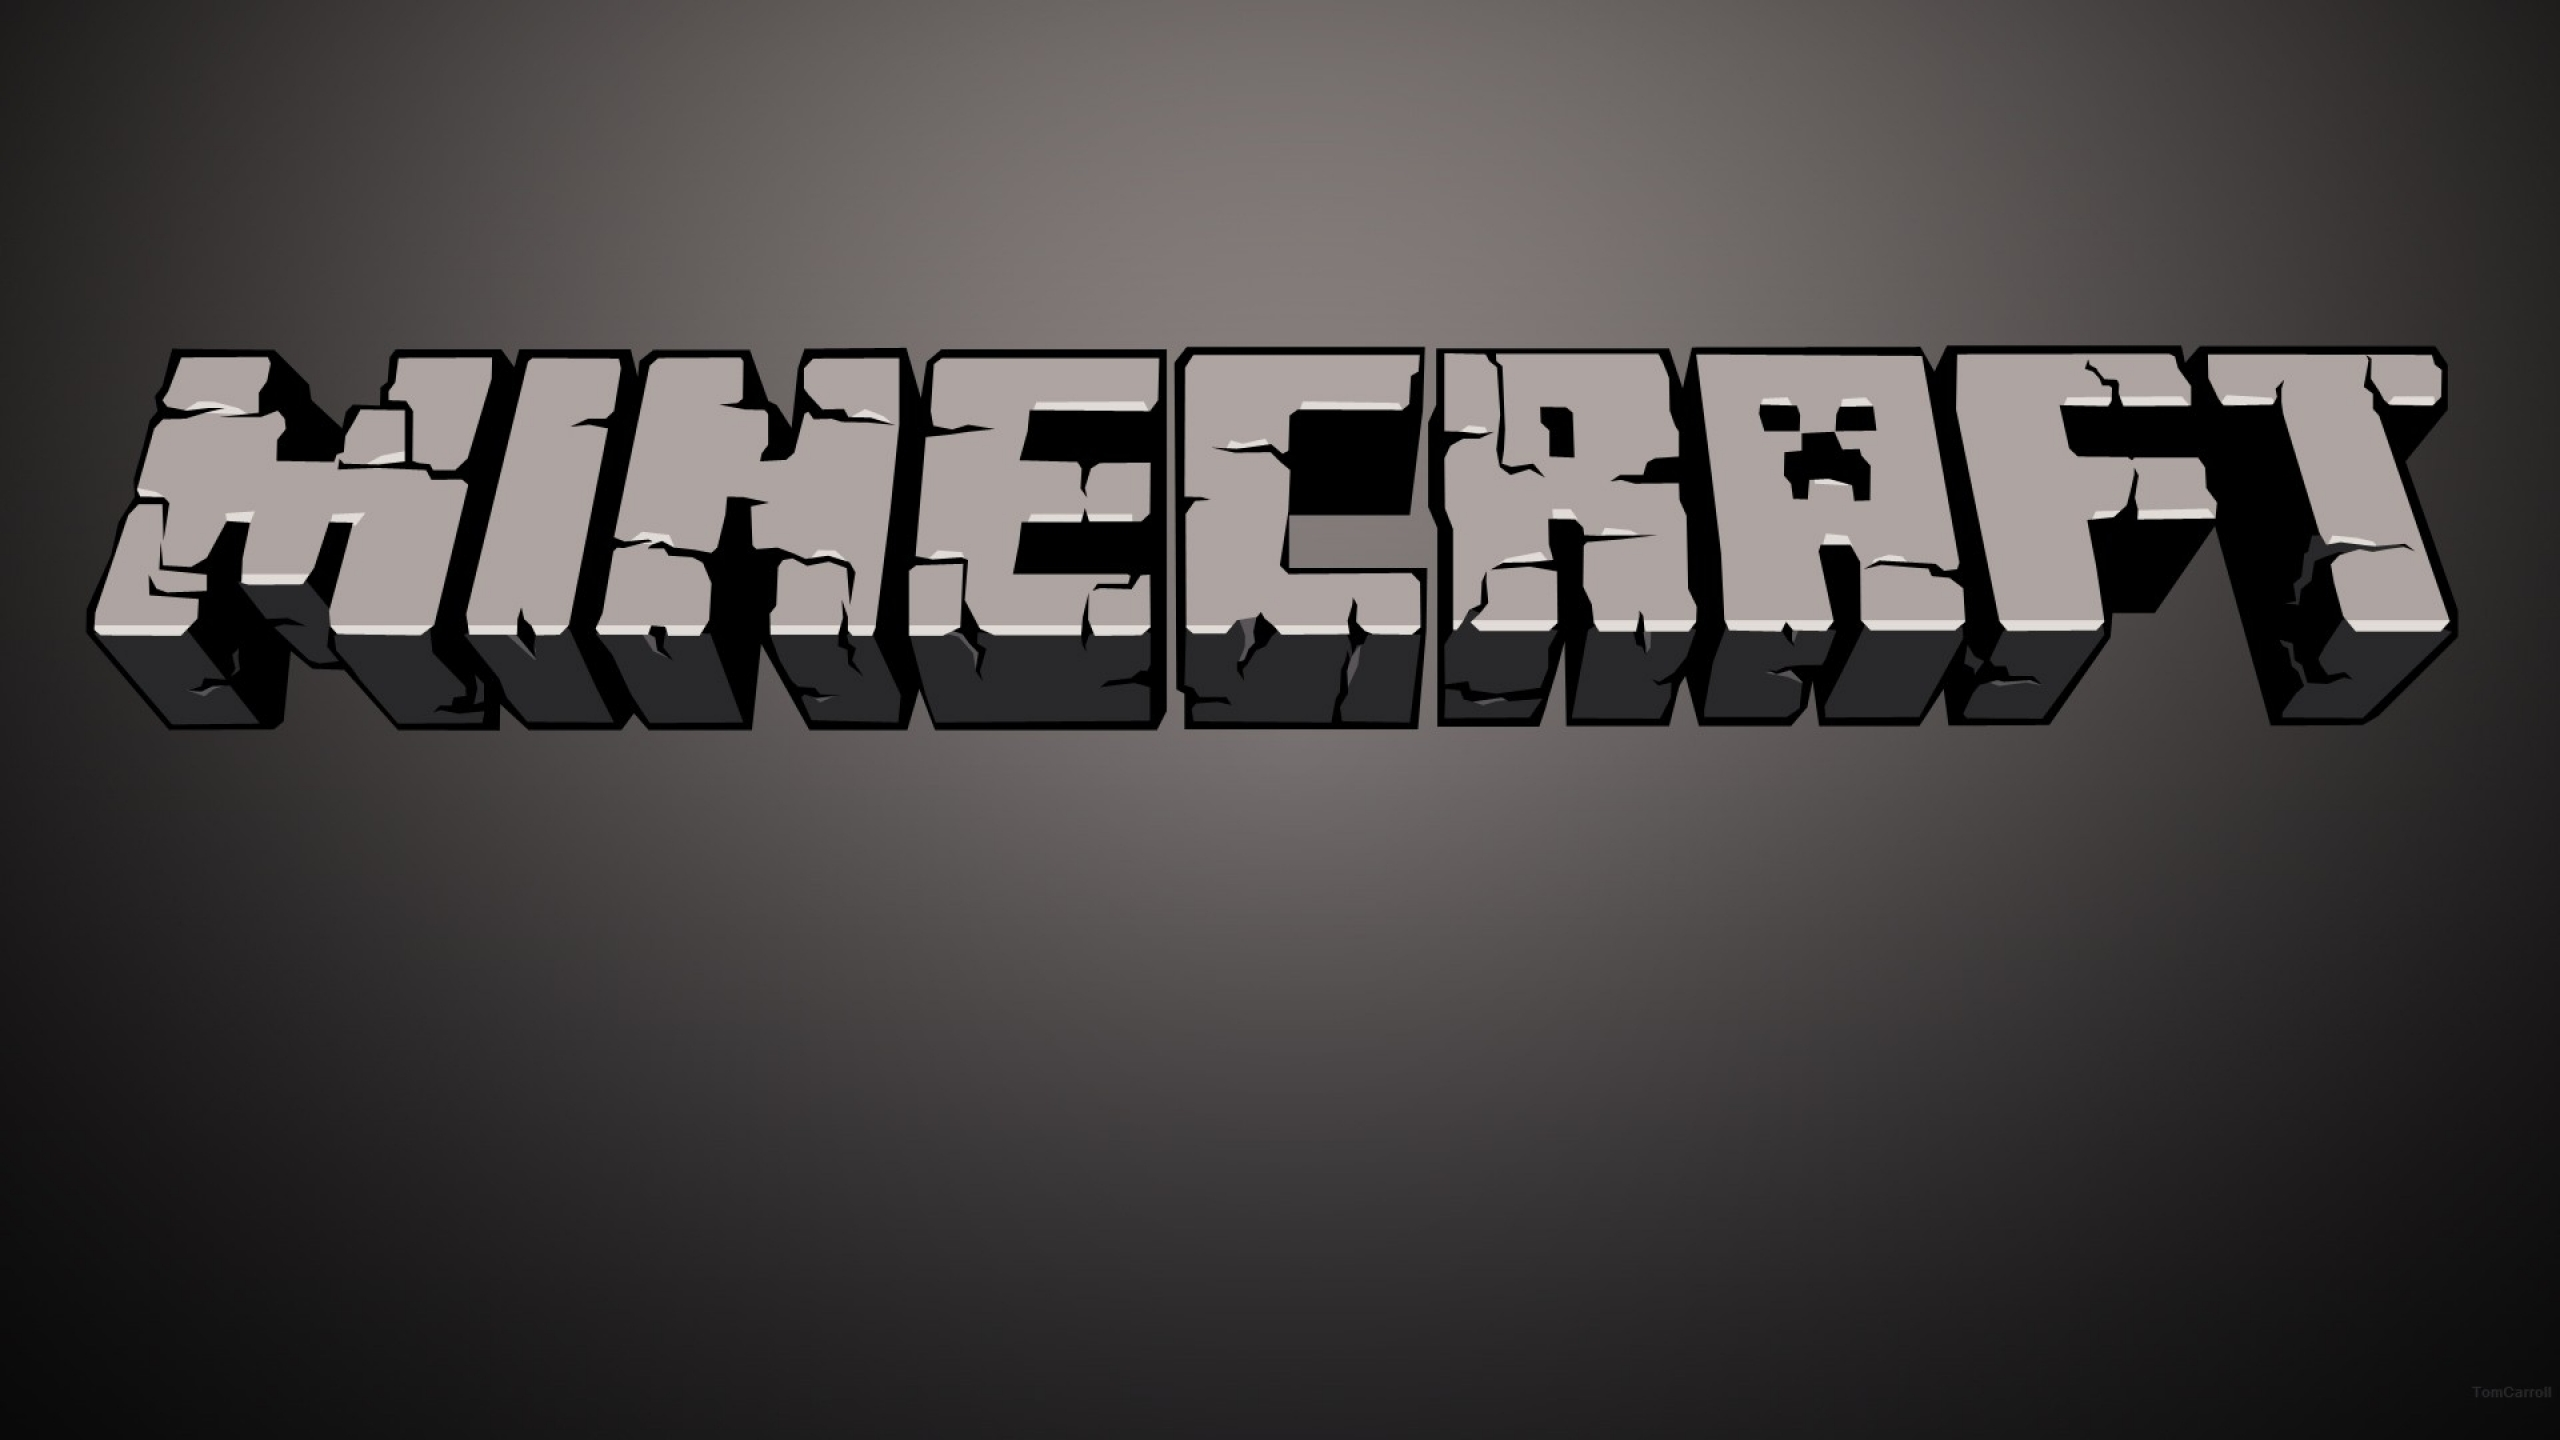 Abstract Minecraft Hd Wallpaper 2560×1440 Wallpaper